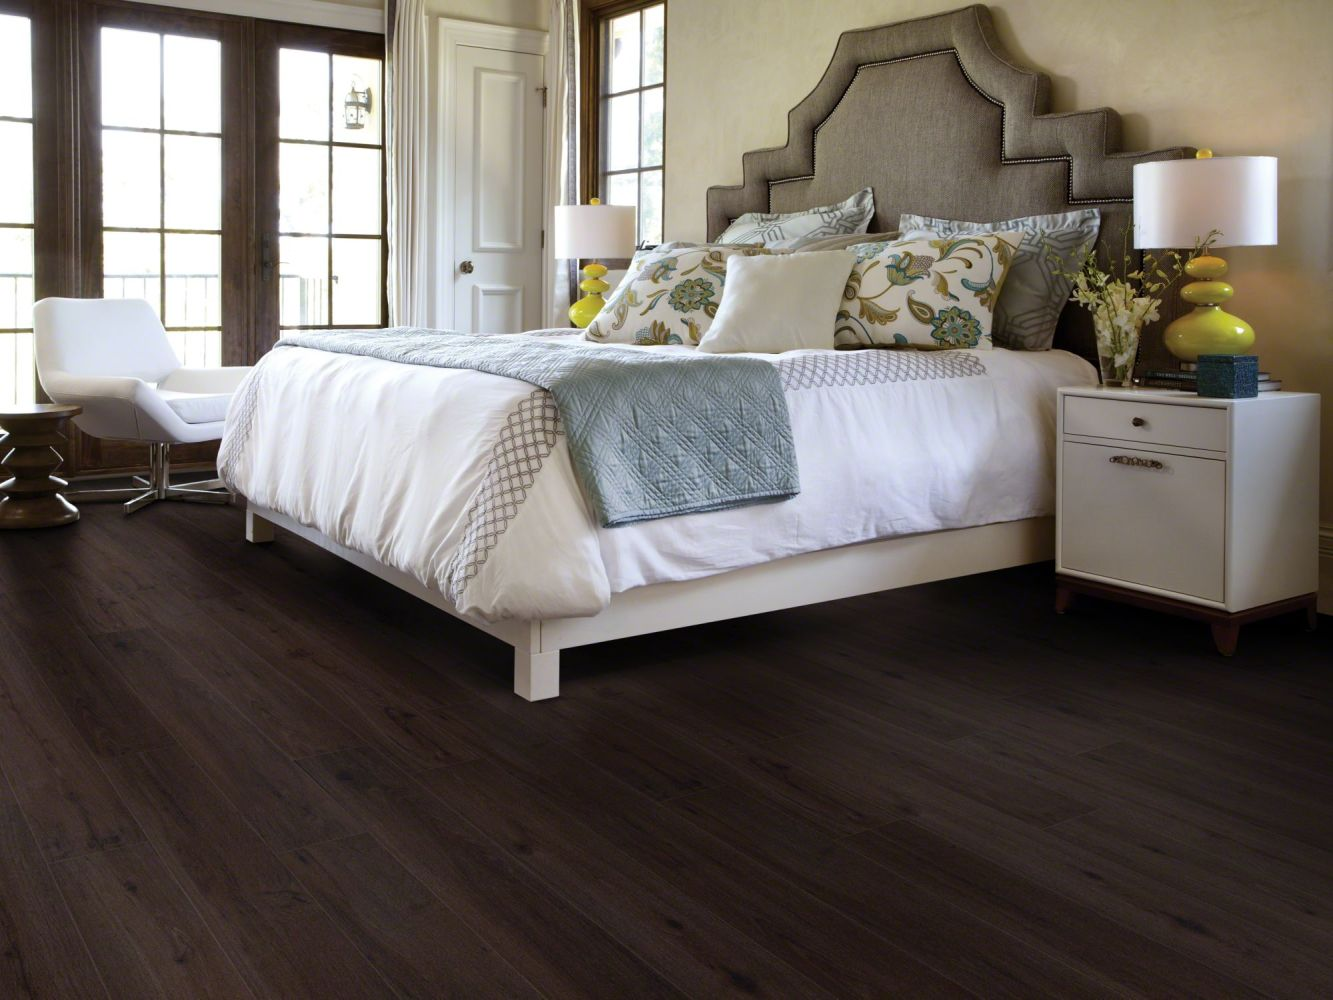 Shaw Floors Vinyl Residential World's Fair 12mil Barcelona 00791_0319V